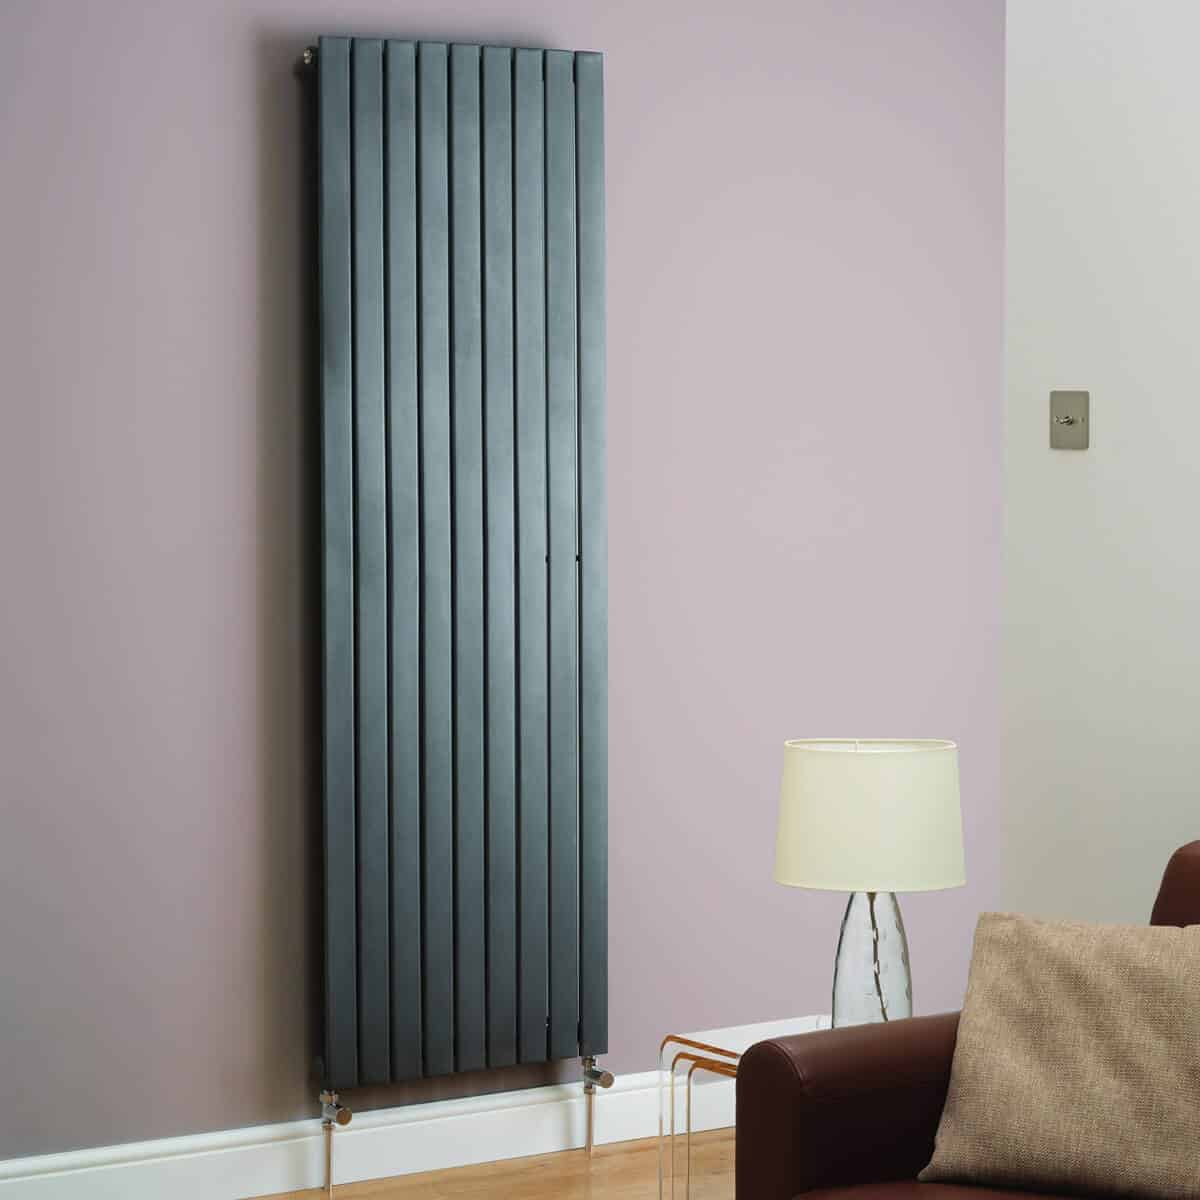 Tall Wide Designer Radiators Poshrads Designer Radiators